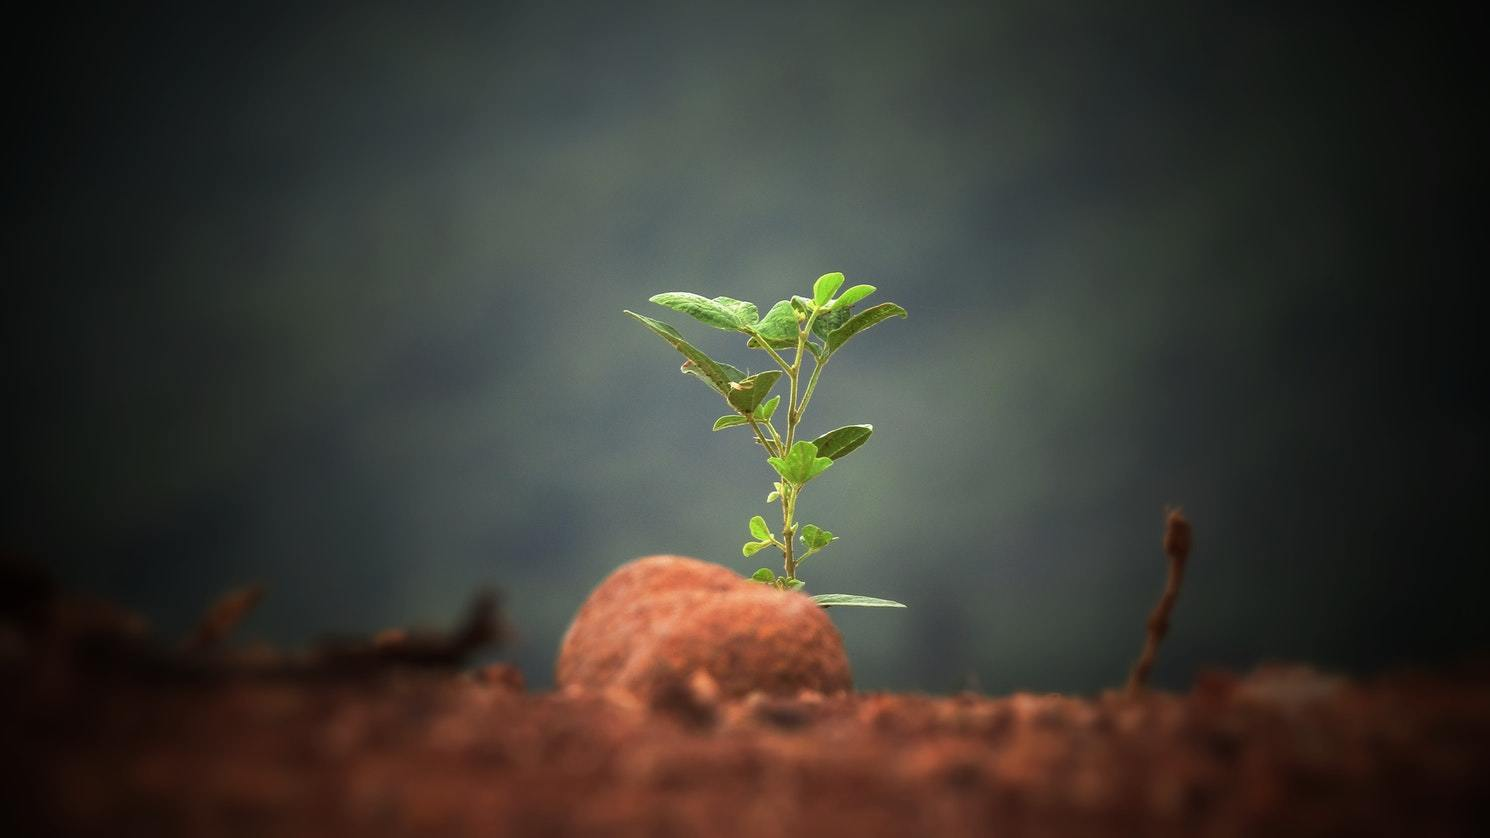 Solitary sapling growing from soil